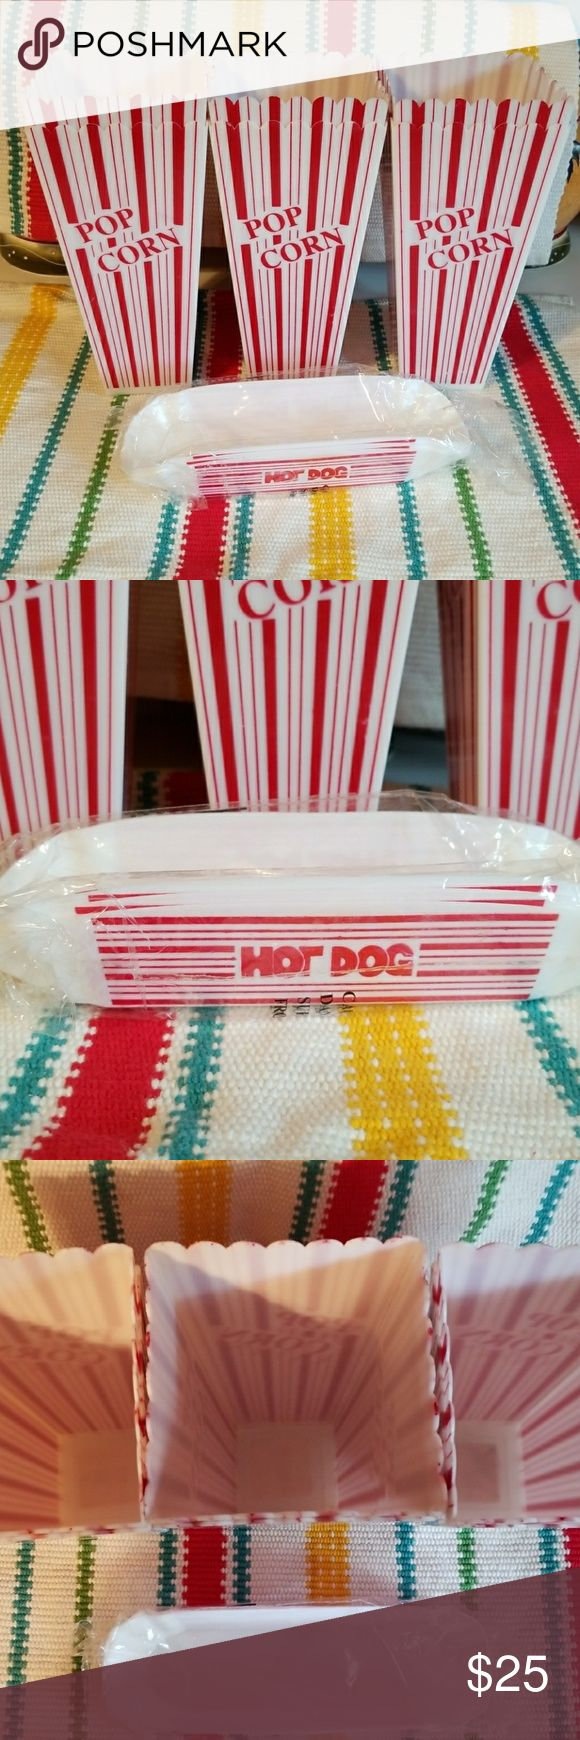 Popcorn & Hot Dog Party Holders These 6 plastic popcorn containers and 3 pack of hot dog holders are sure to be the talk of your next party ?. Tagged Michael Kors for exposure. Michael Kors Other